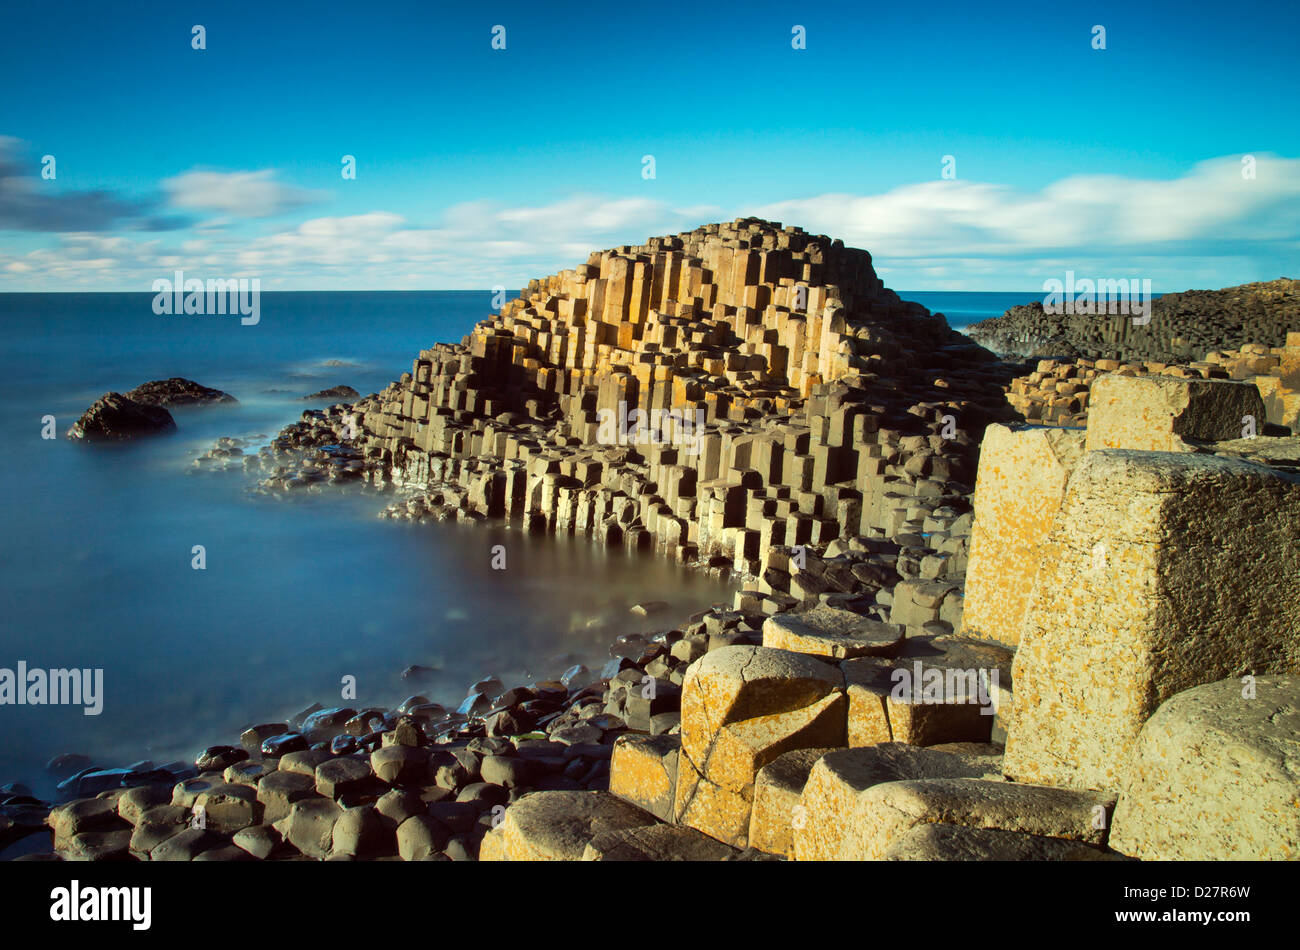 Sunny afternoon and calm waters on the famous Giant's Causeway on the Antrim Coast of Northern Ireland - Stock Image